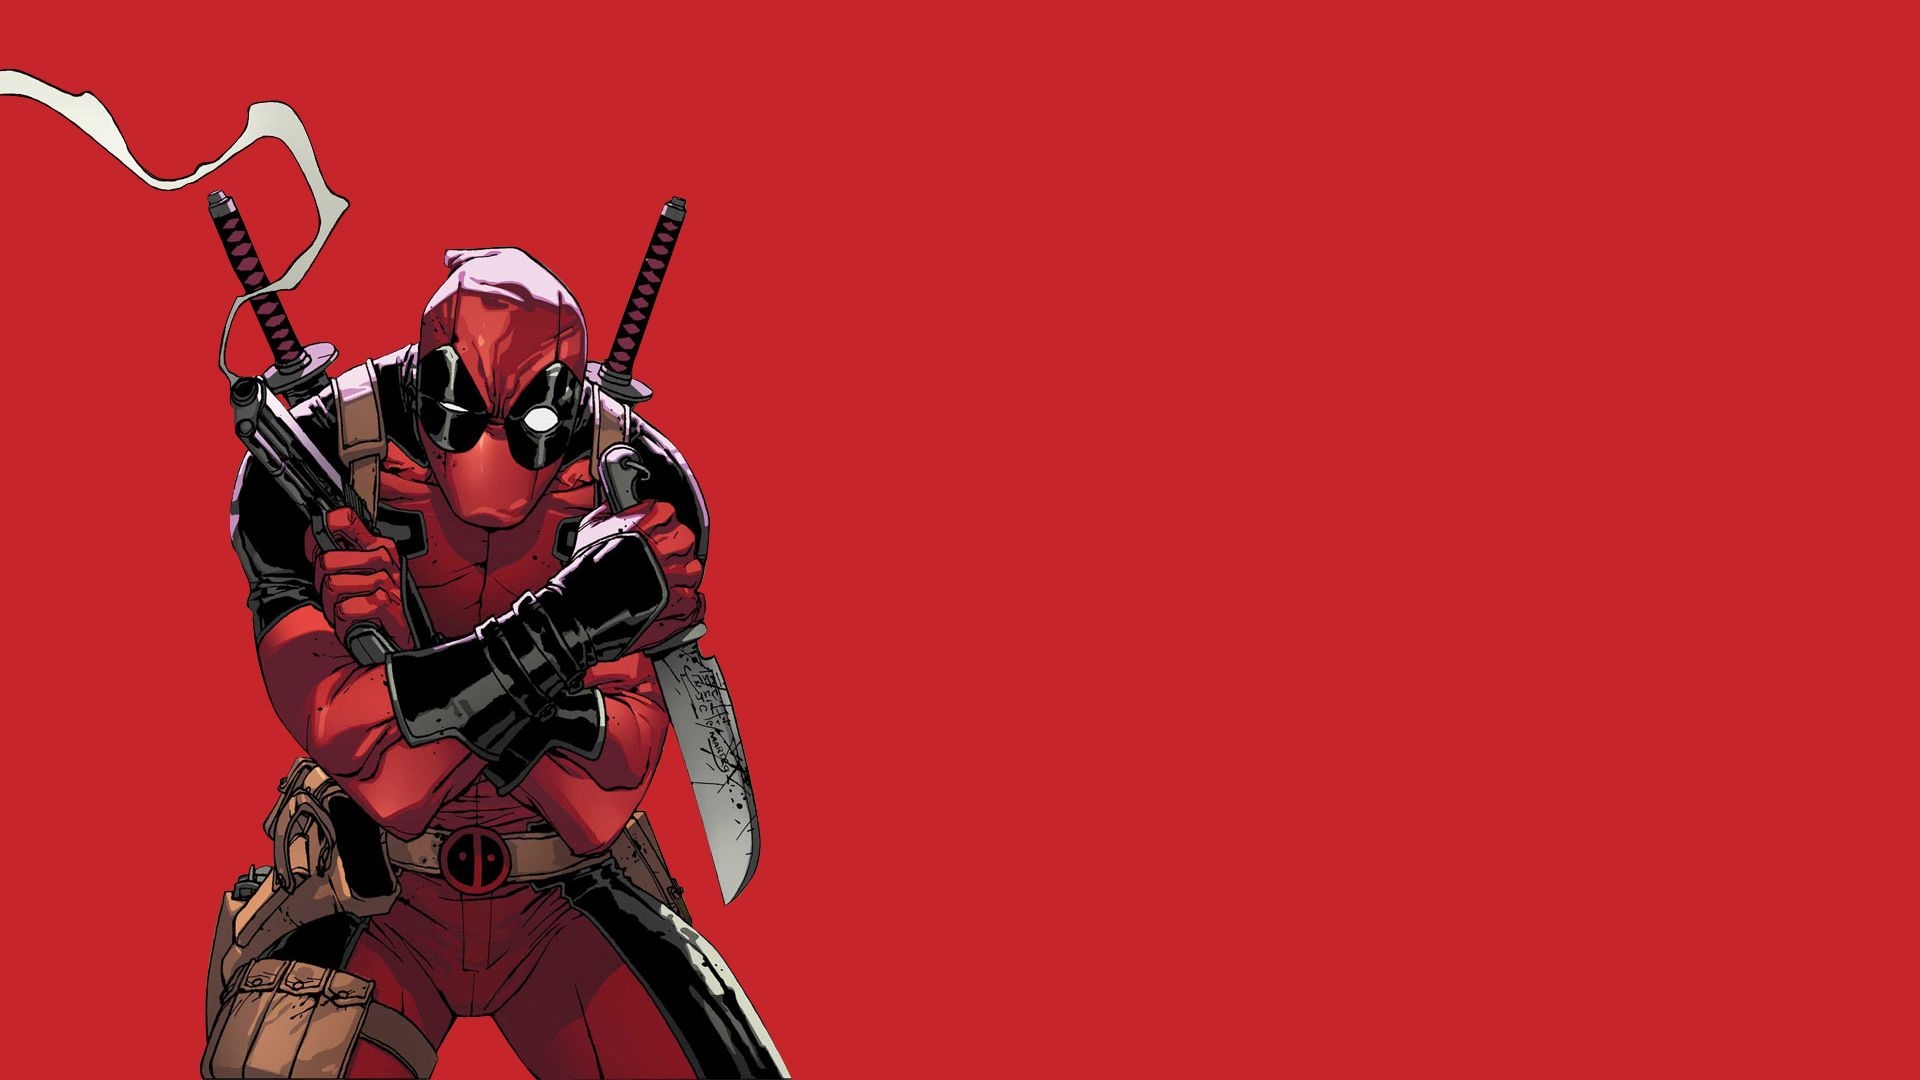 Deadpool Wallpaper527378 Jpg 1920 1080 Deadpool Wallpaper Deadpool Illustration Deadpool Wallpaper Desktop